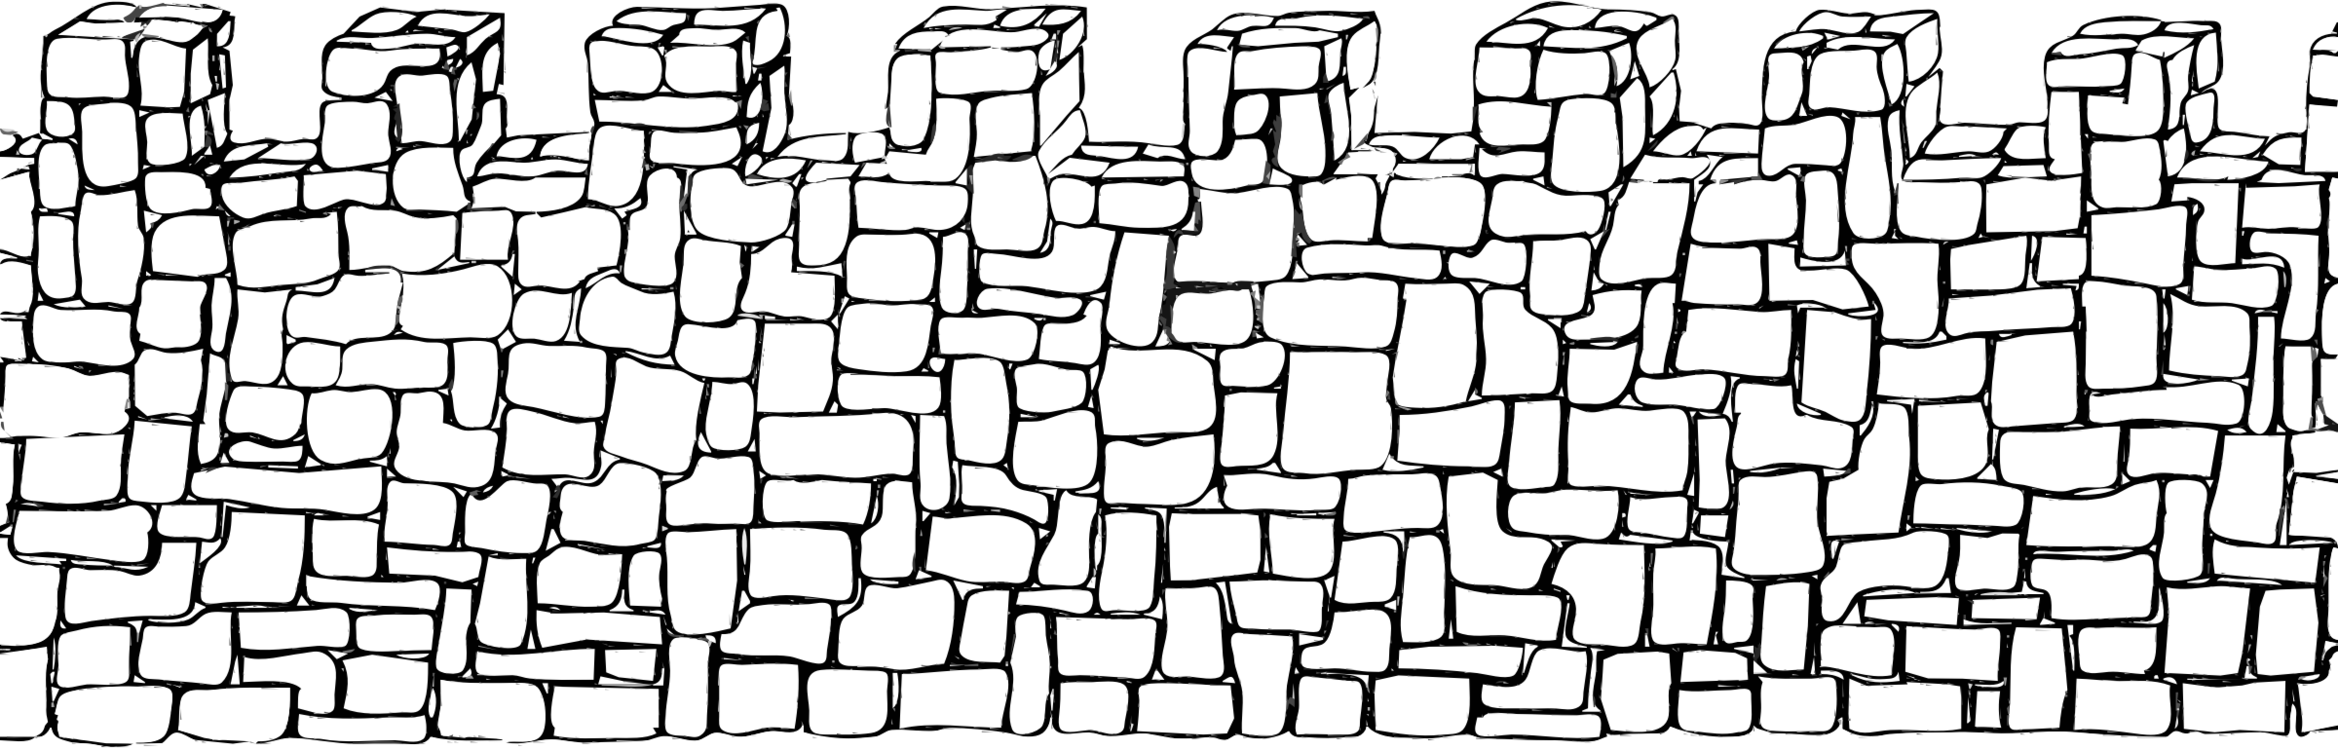 Stone wall pattern clipart vector transparent stock Line Art,Square,Angle Clipart - Royalty Free SVG ... vector transparent stock